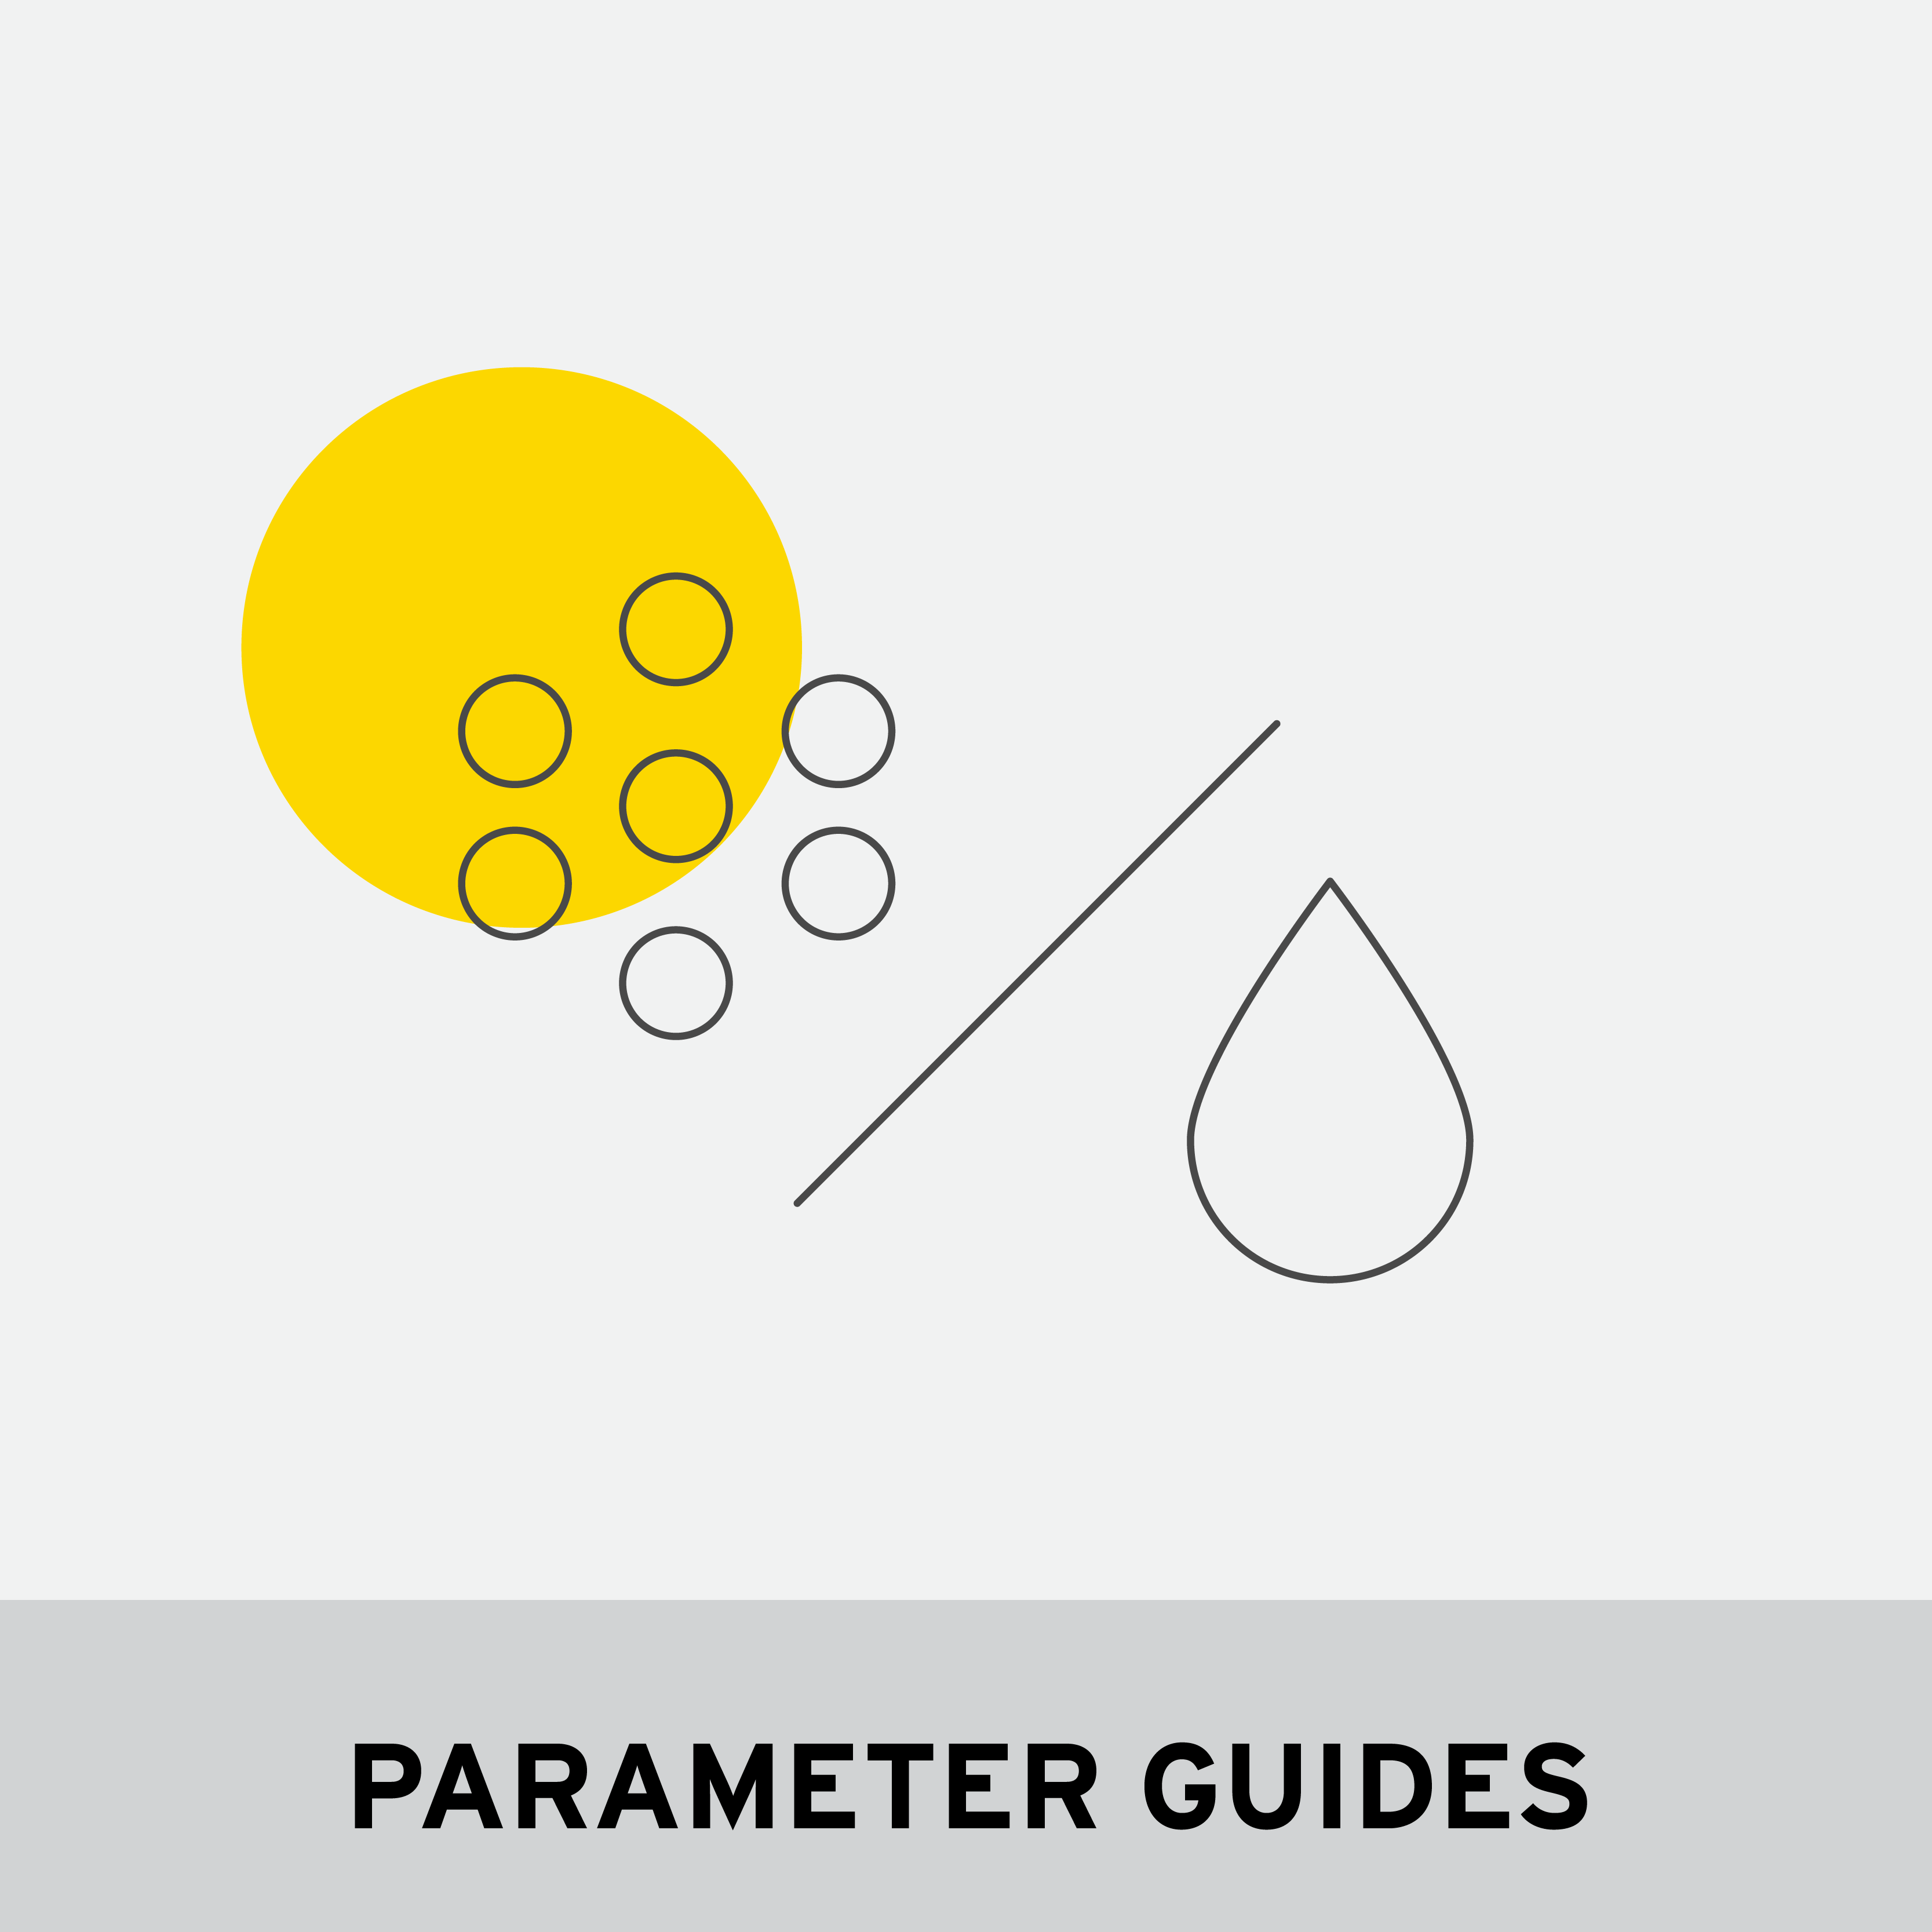 PARAMETER GUIDES